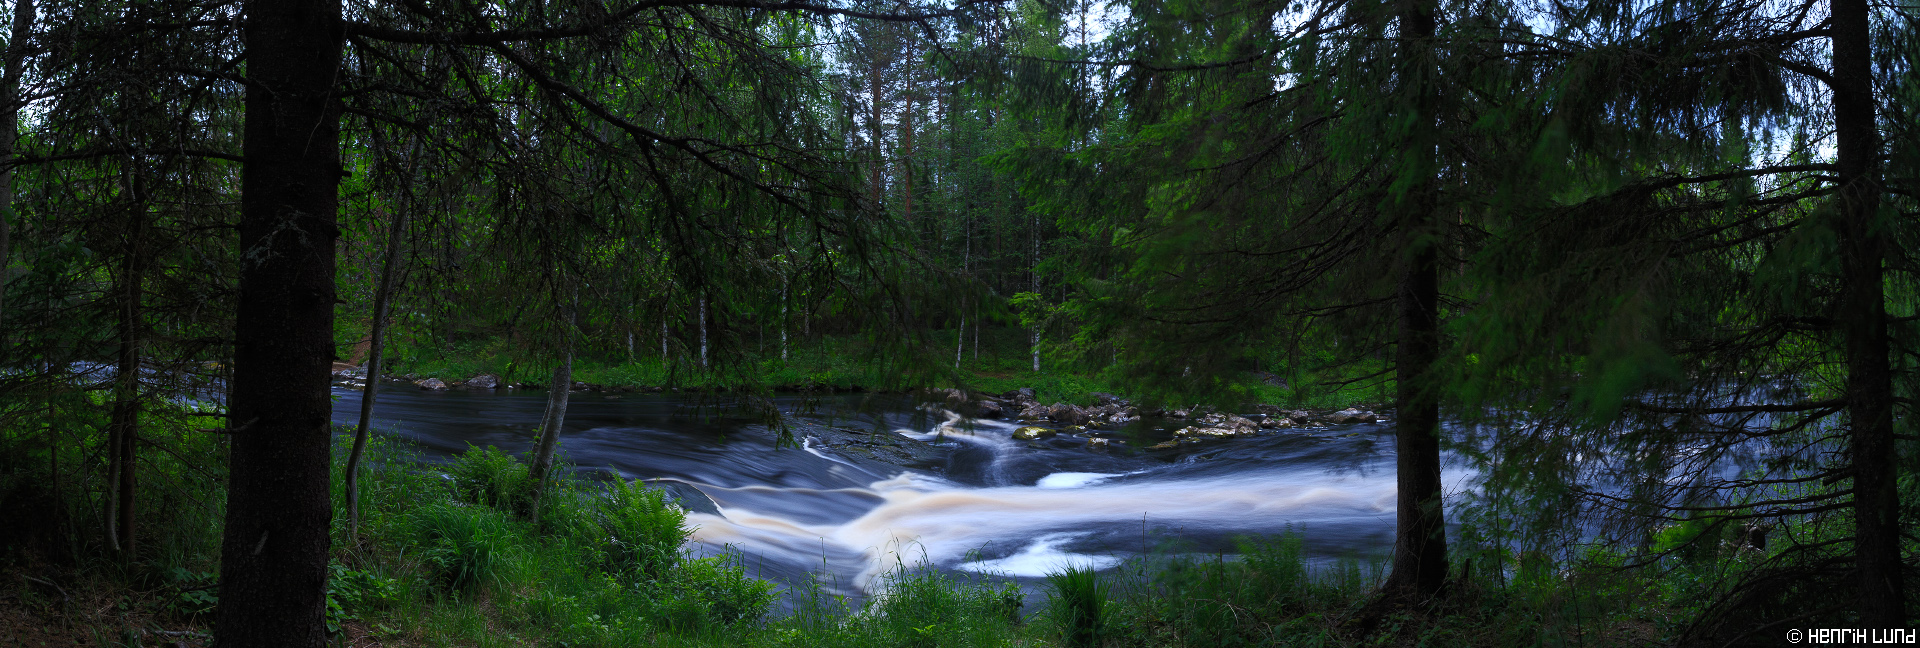 Koitajoki river at Vekarus rapids in Northern Carelian region in Joensuu, Finland. June 2015. Lee Big Stopper used for long exposure. Panorama stitched of 3 images.